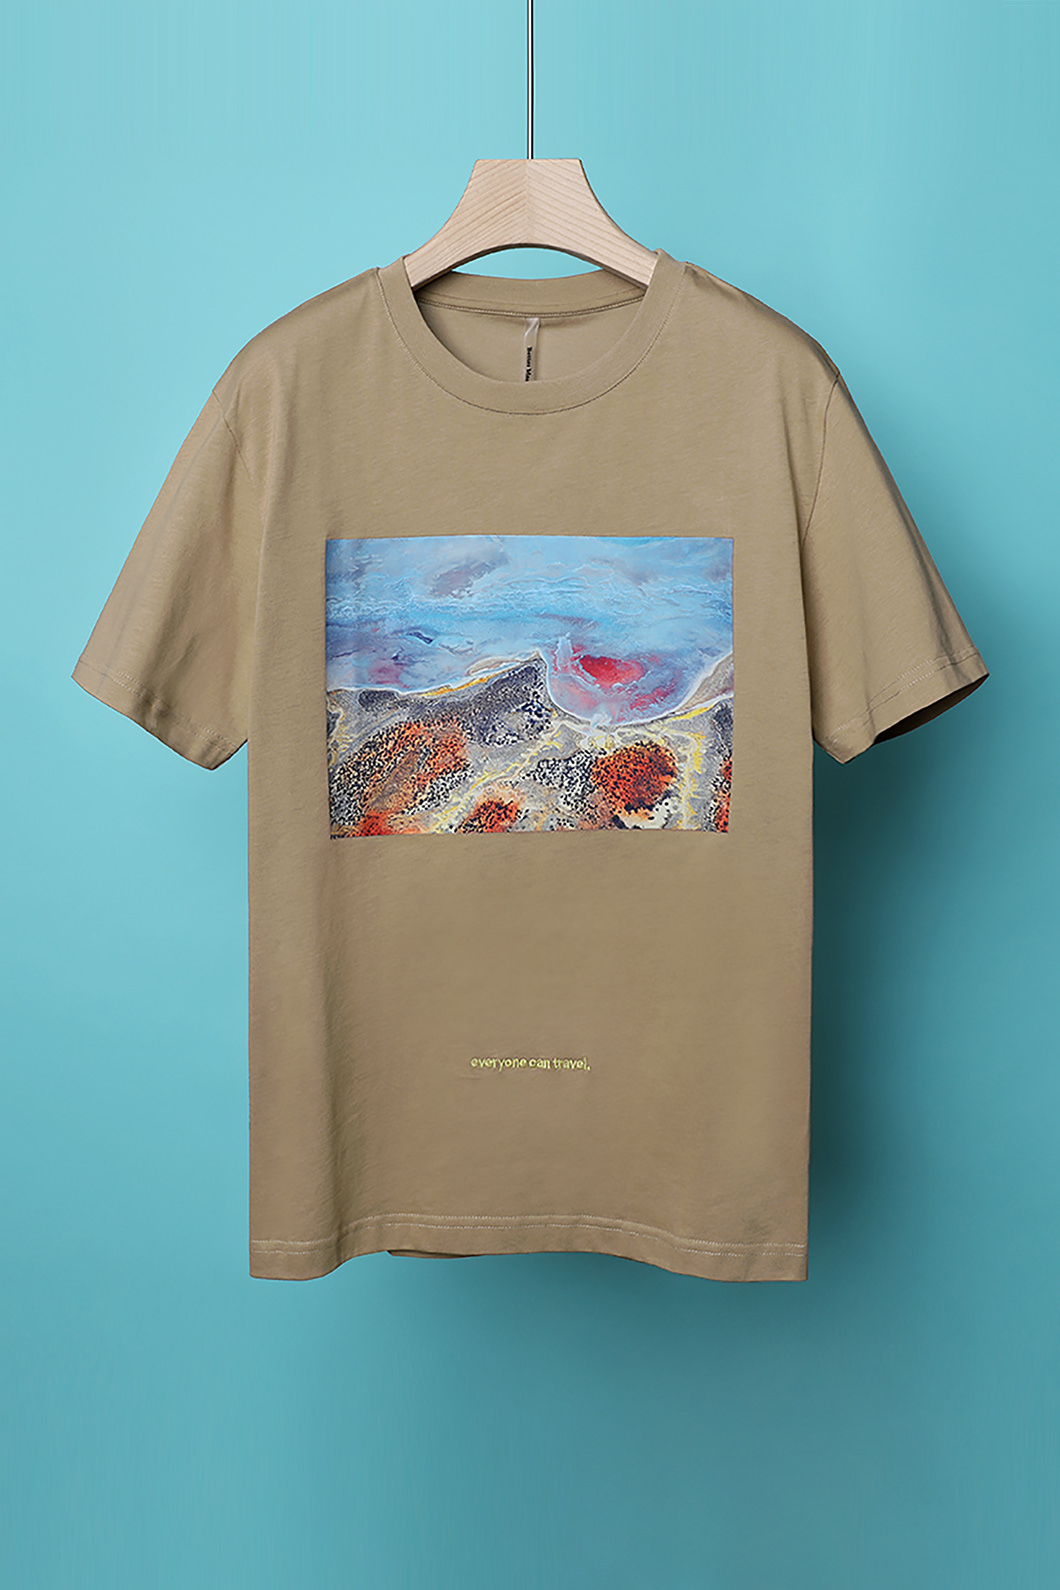 TRAVEL WAVE ROUND T-SHIRT-BROWN수입소량한정제품!